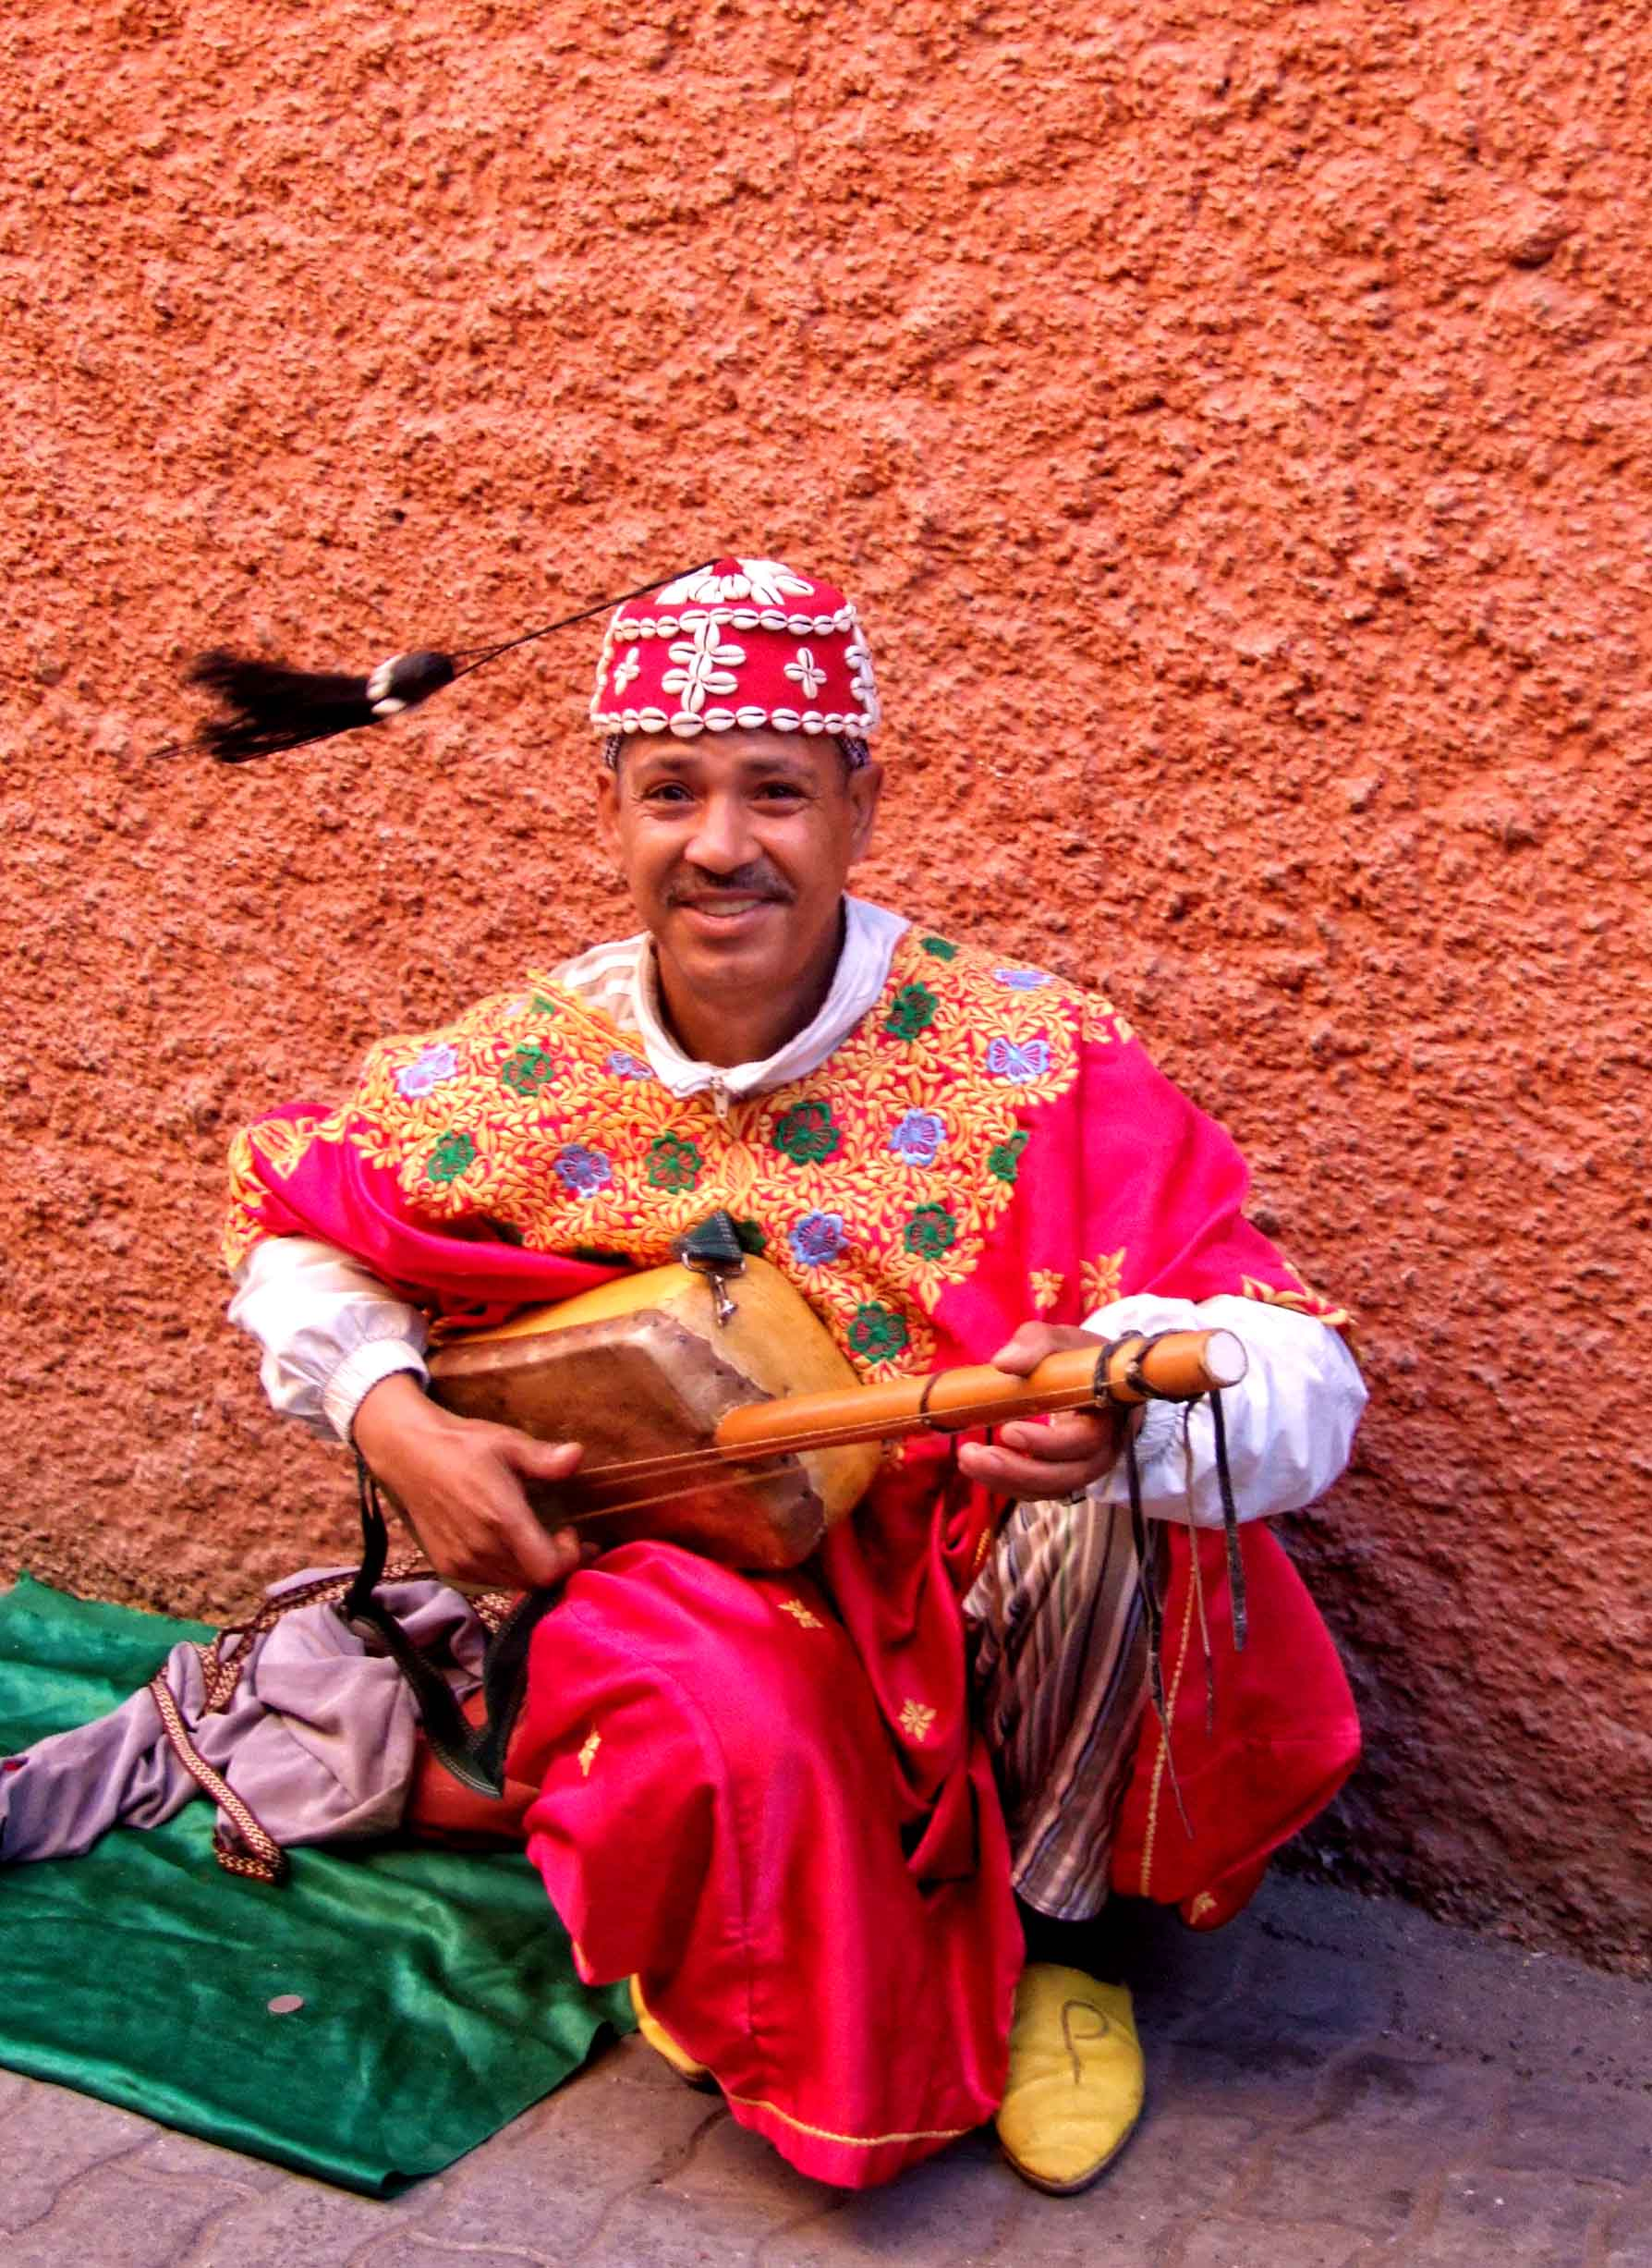 Musician in red robes